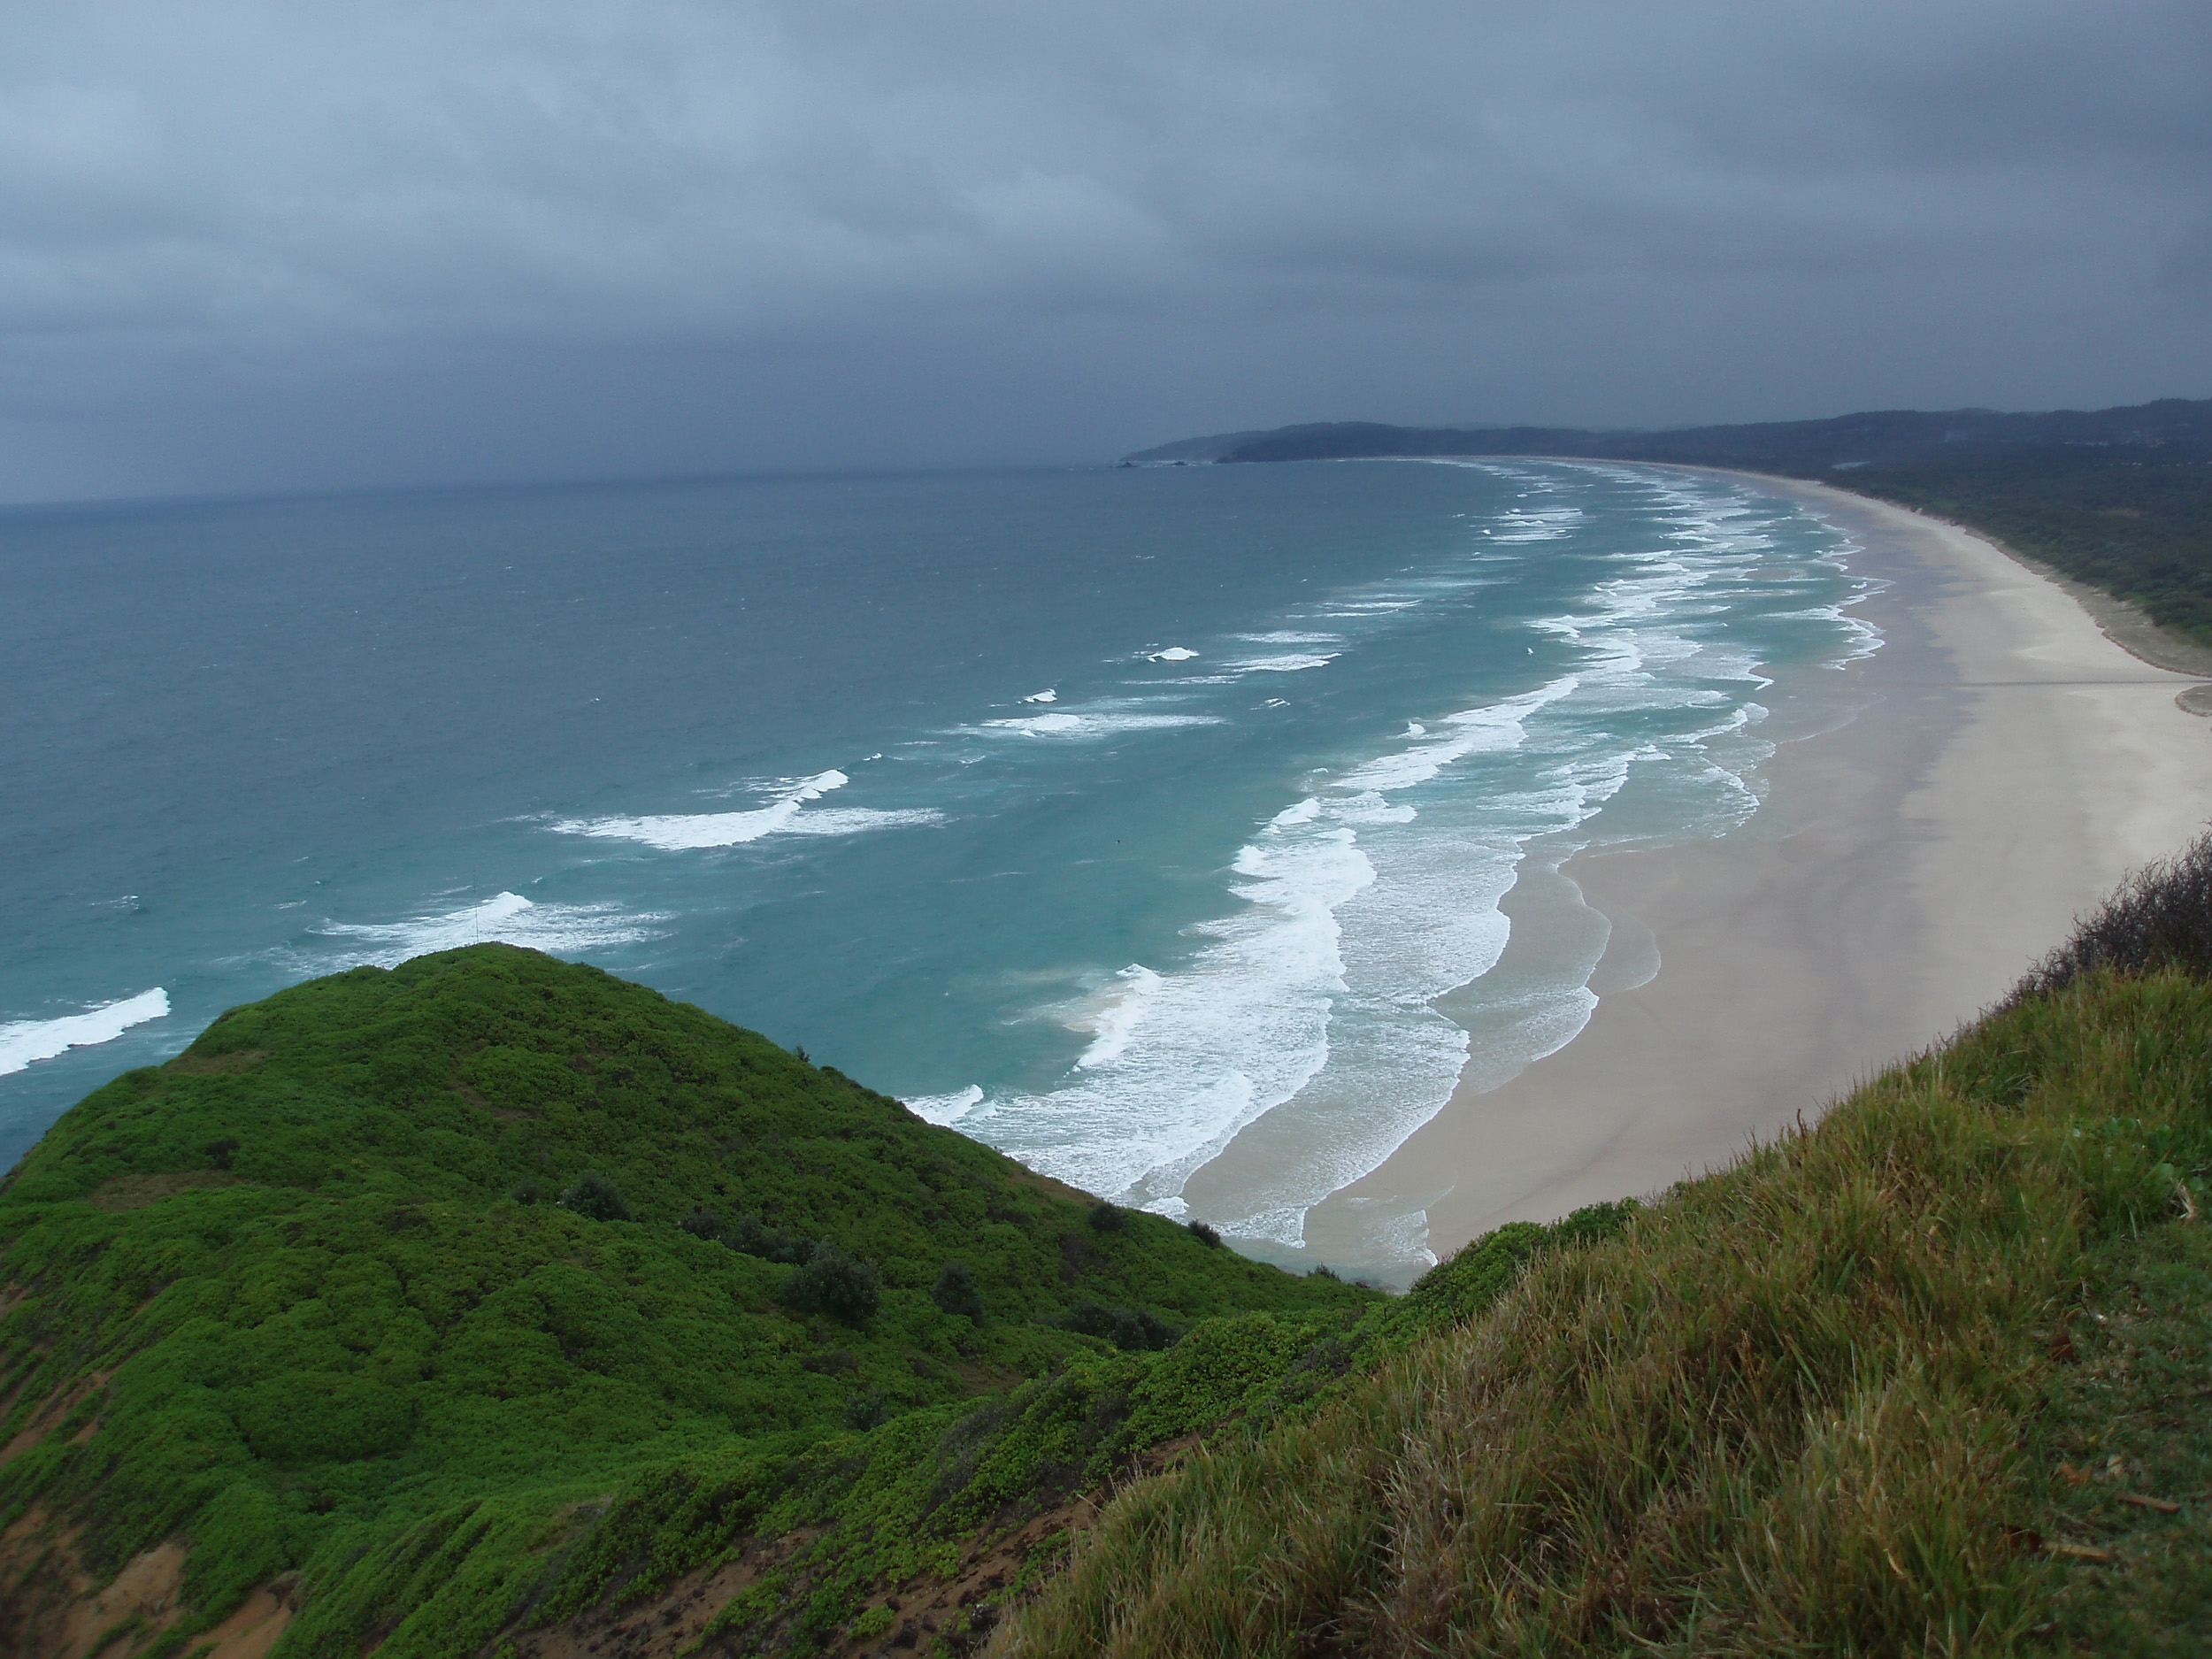 A stromy day over tallow beach, cape bryon, byron bay, NSW